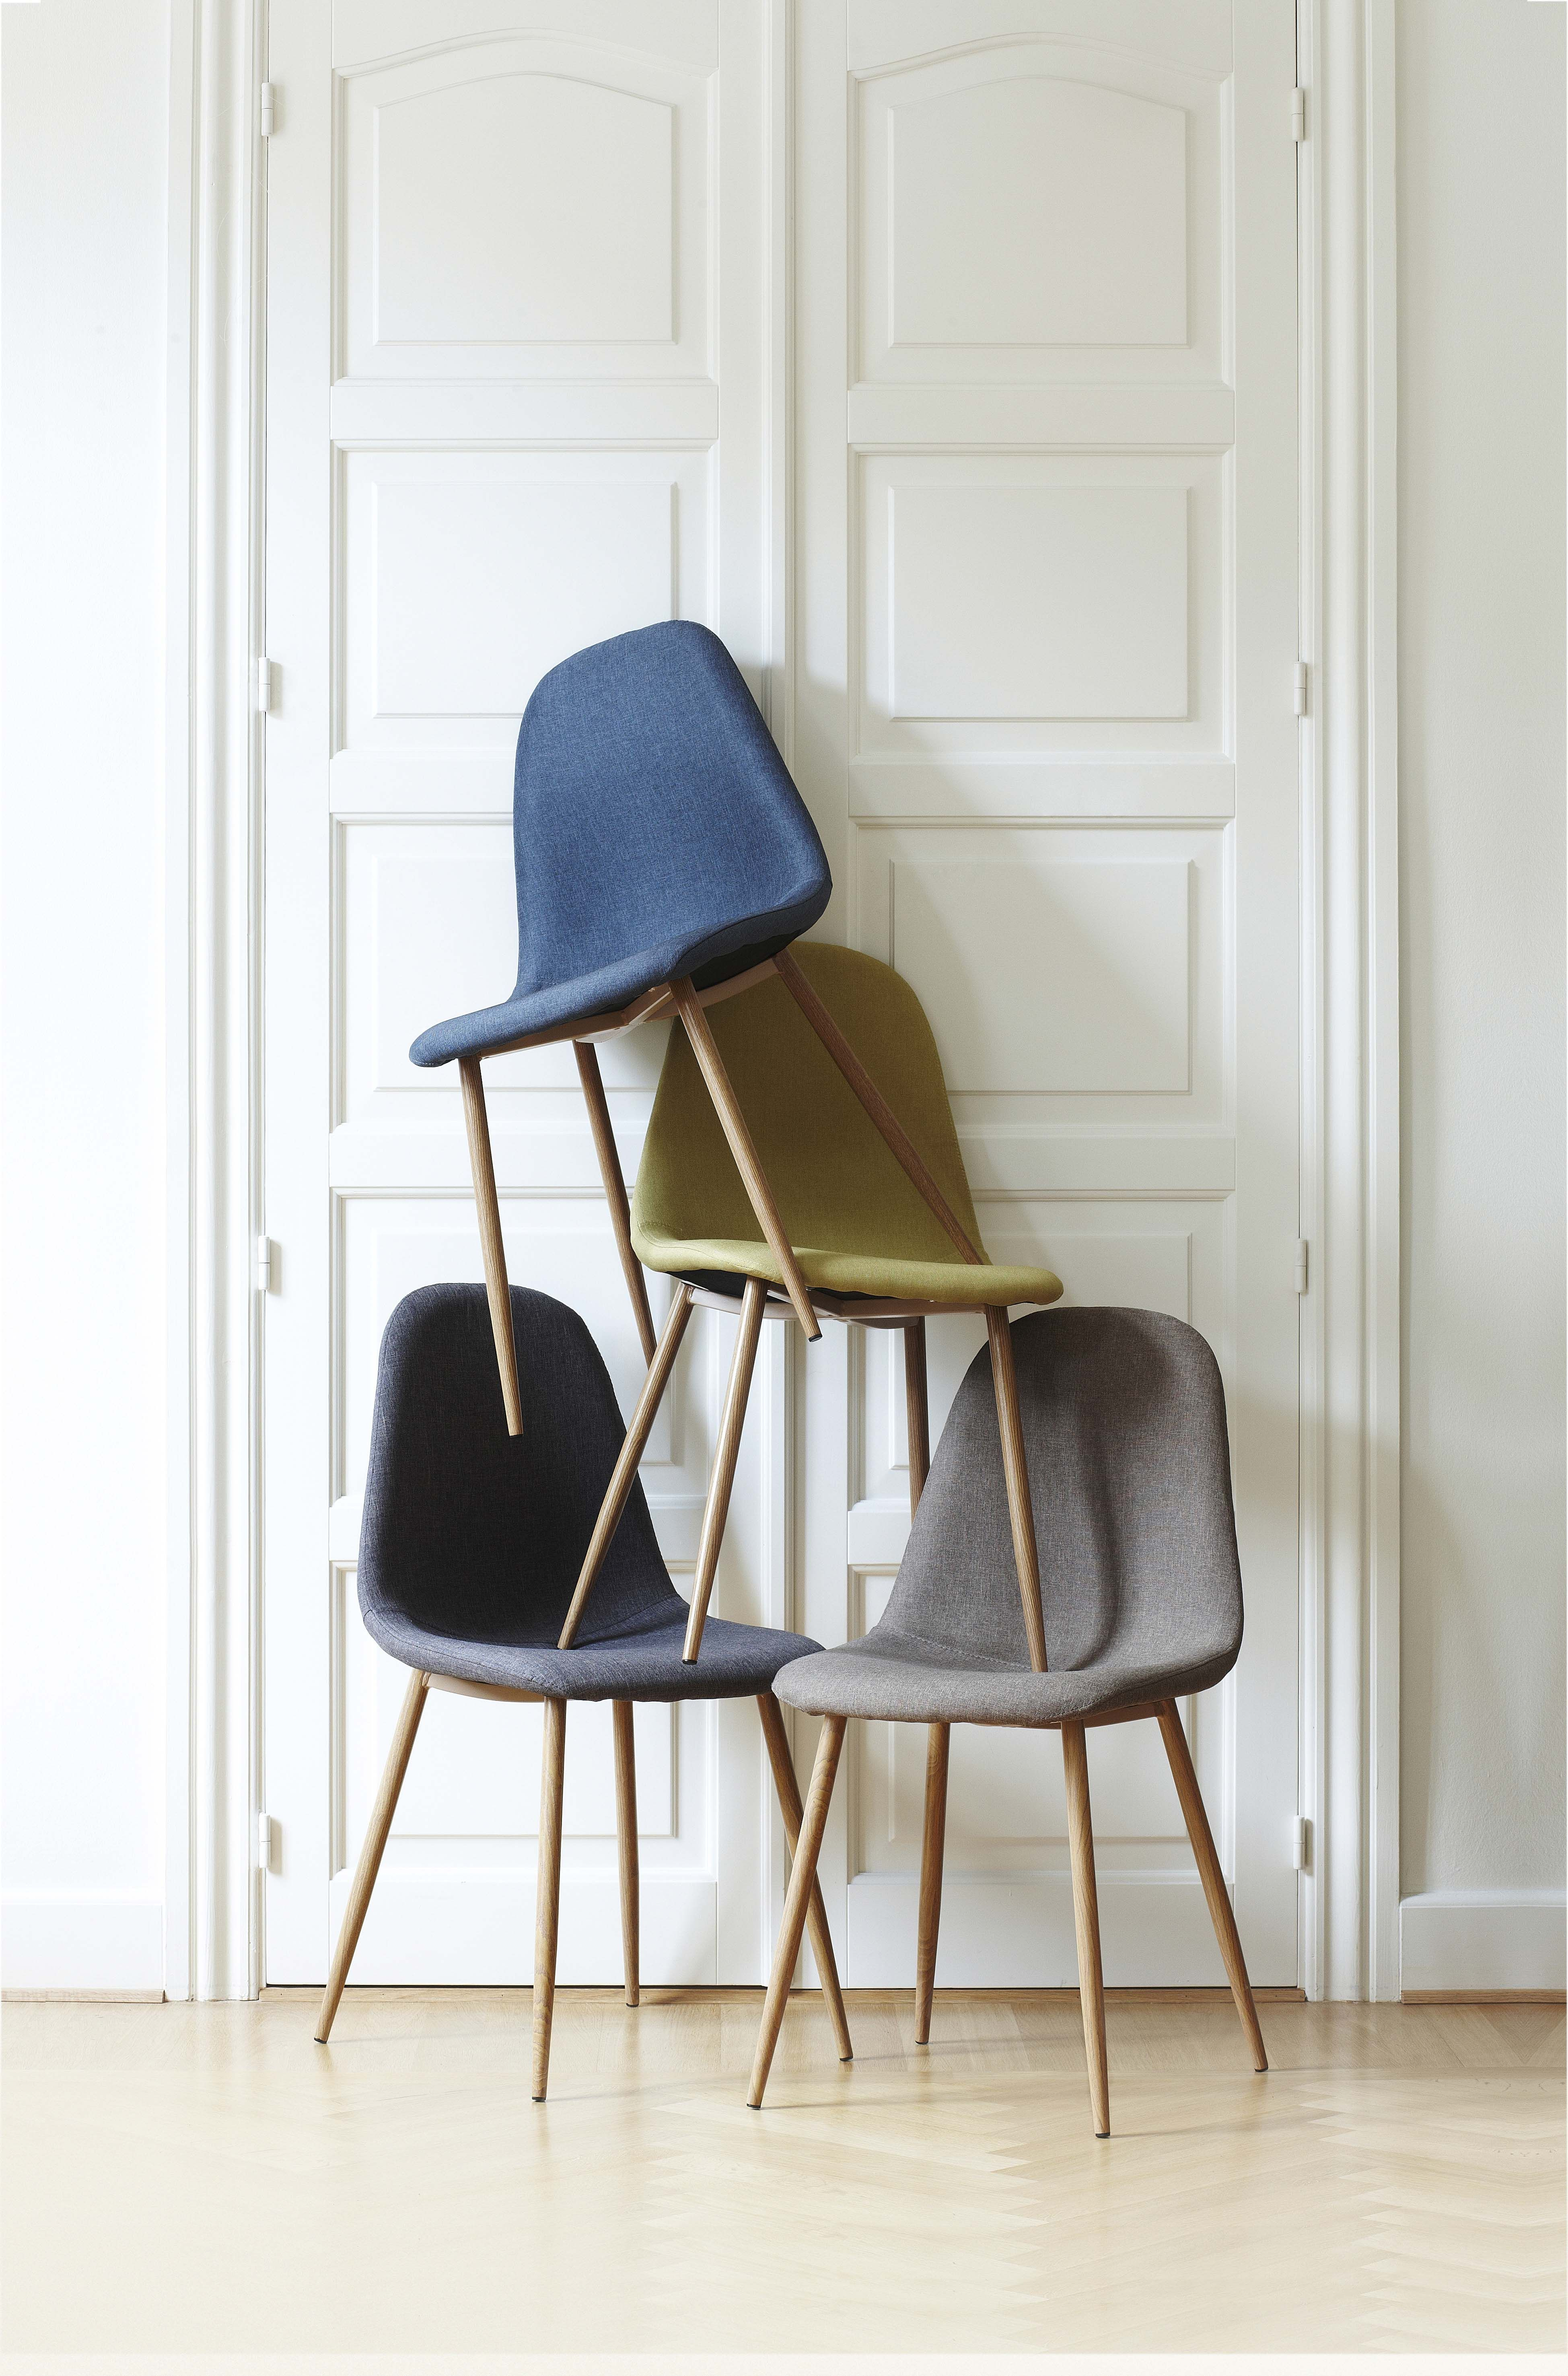 New Interior Collection Chair With Fabric Seat Comes In 4 Colors Available In Stores From 17